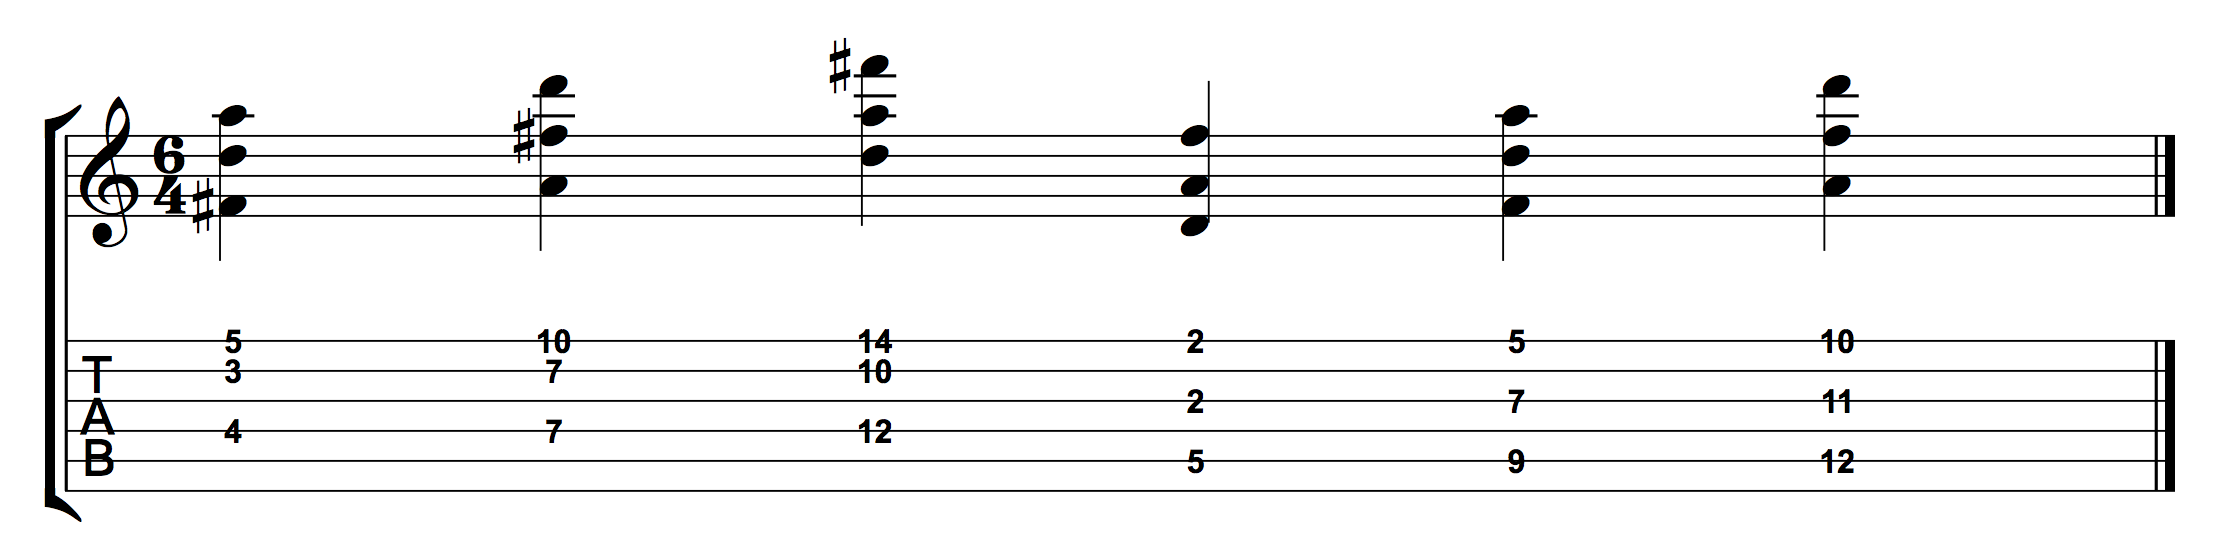 D Major Triads 124 and 135